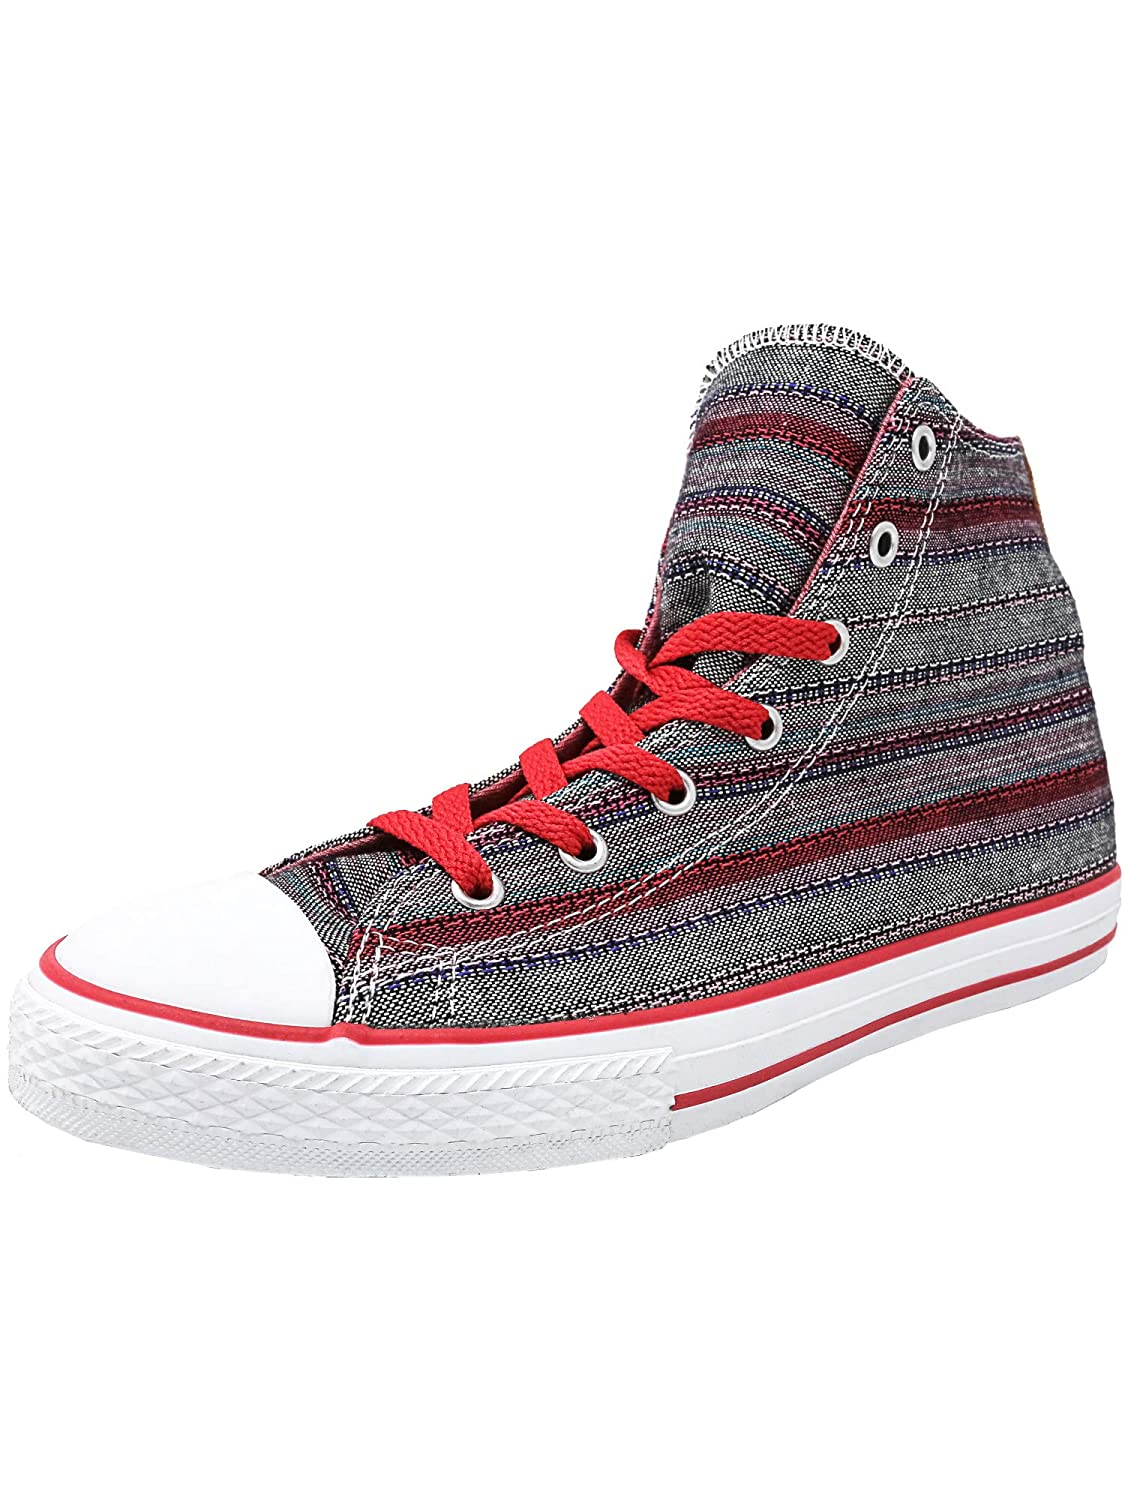 Girls Grade School Converse All Star Hi Summer Crafted Athletic Shoes